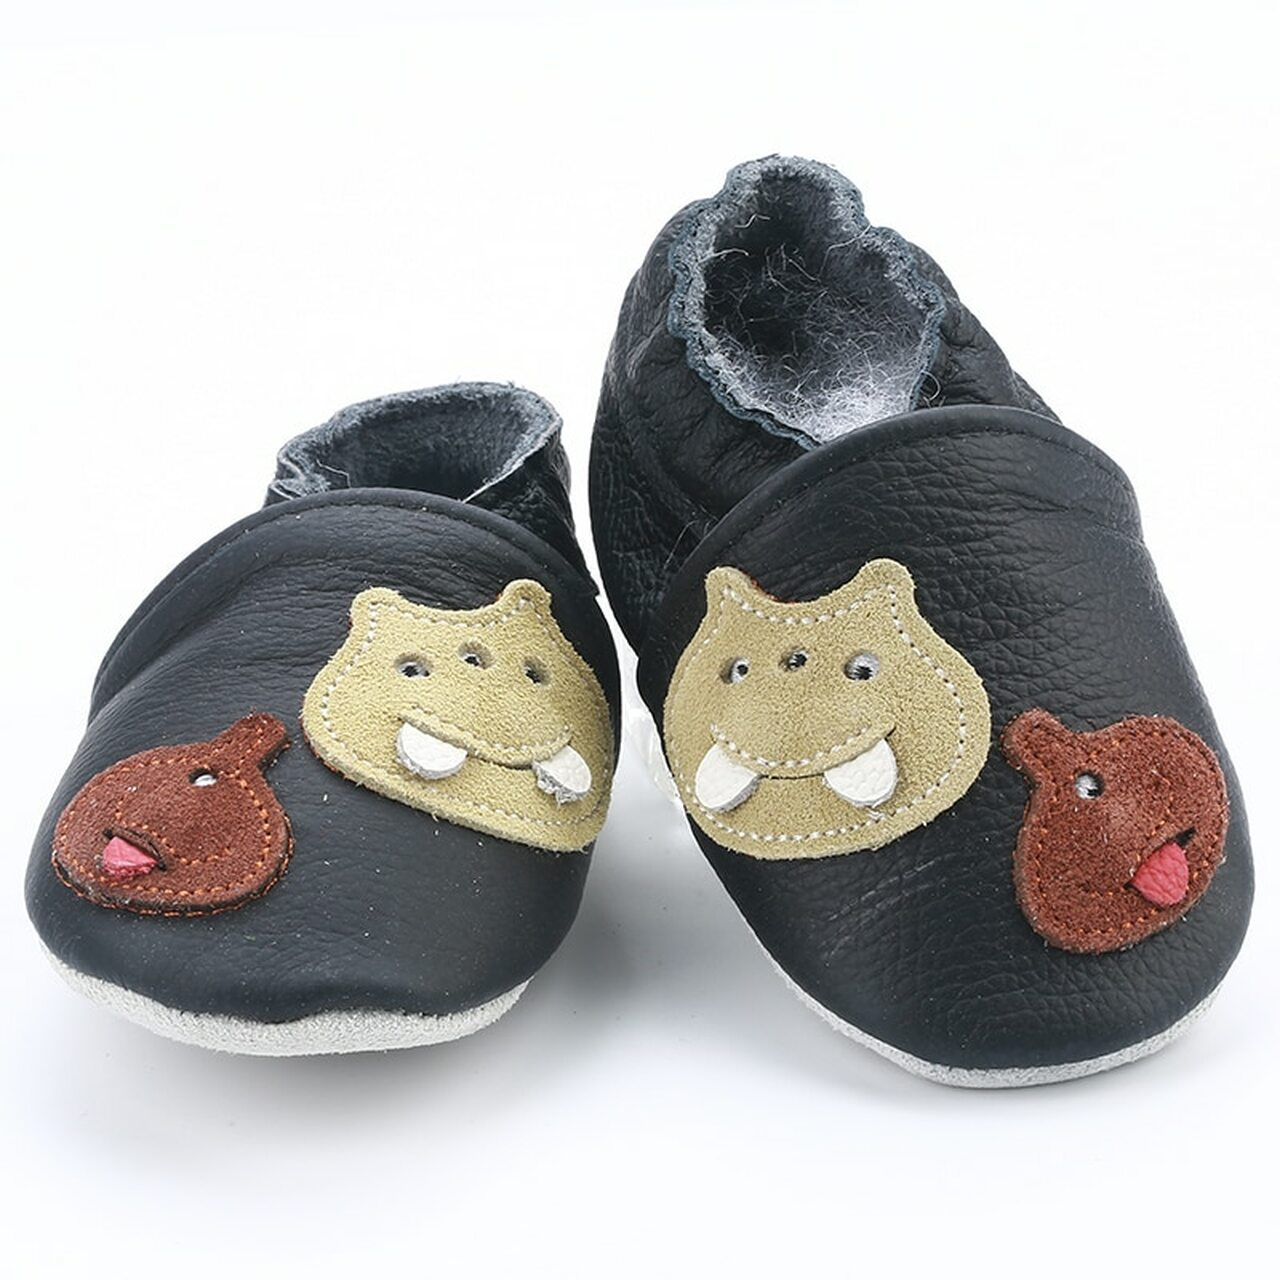 d8fb86b1447b7 [simfamily]NEW Genuine Cow Leather Baby Moccasins Soft Soled Toddlers  Infant Baby Shoes Boys Girls Newborn Shoes First Walkers